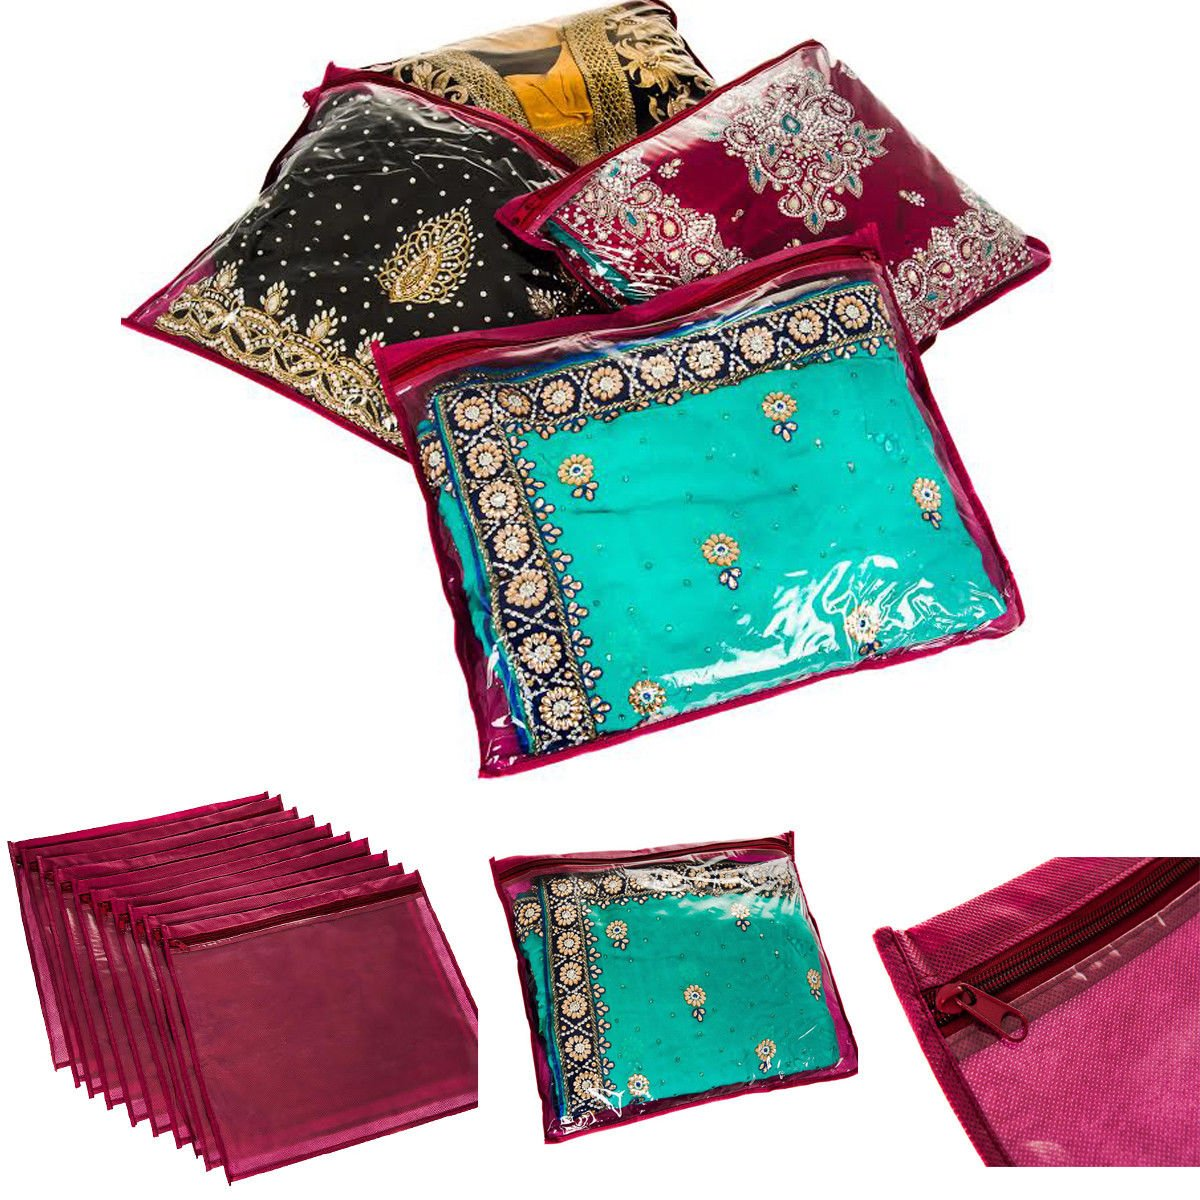 FiNeWaY@ 20 x CLEAR SAREE CLOTHES GARMENT SARI STORAGE BAGS WARDROBE ORGANISER MAROON